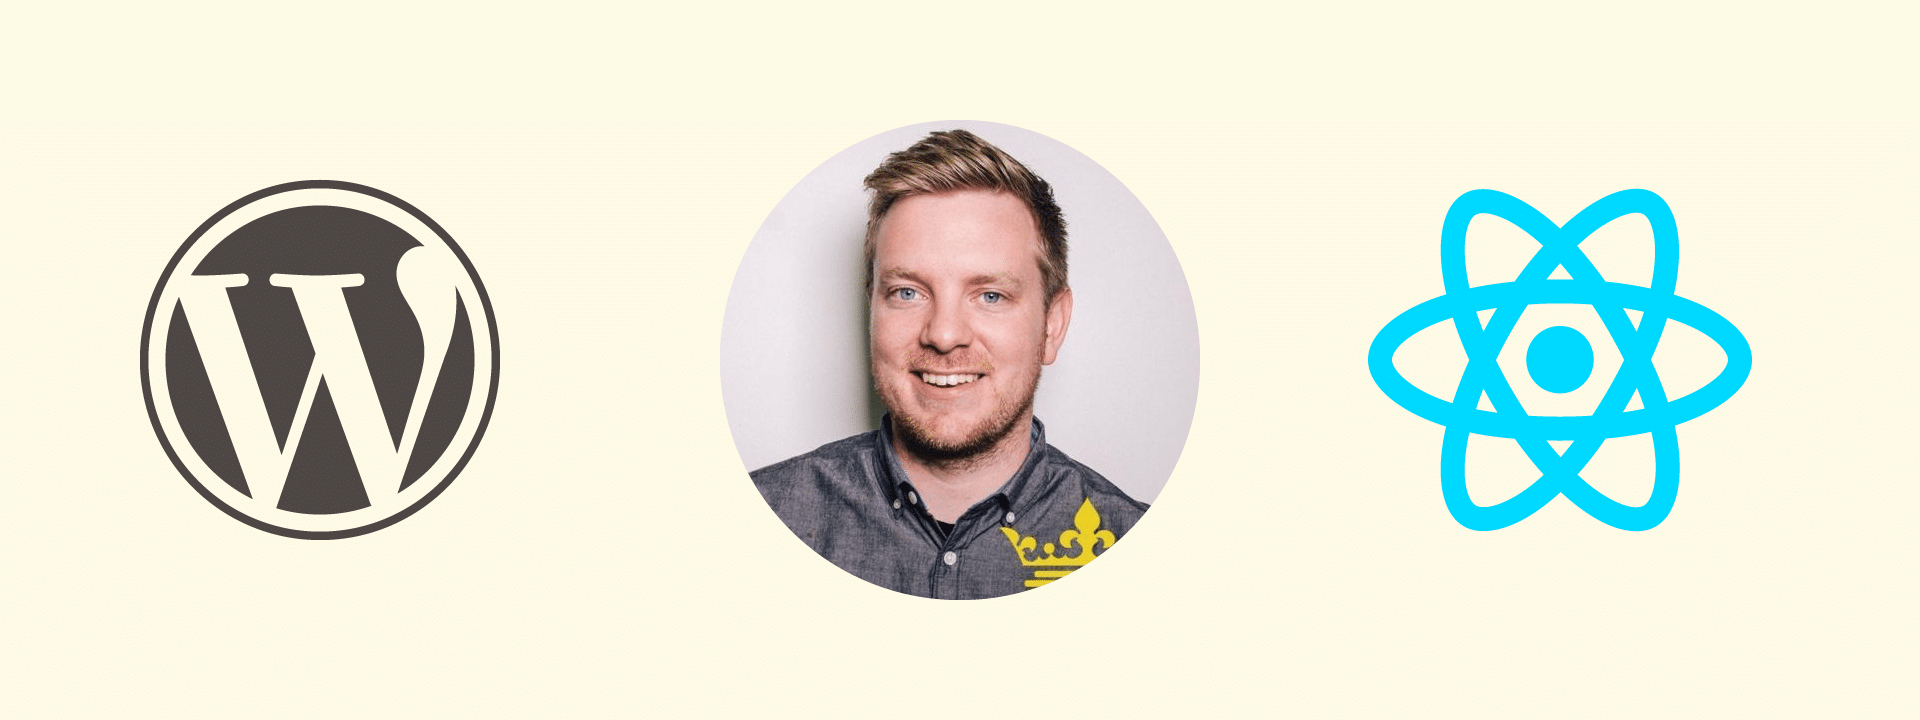 Interview with Wes Bos about WordPress, JavaScript and React